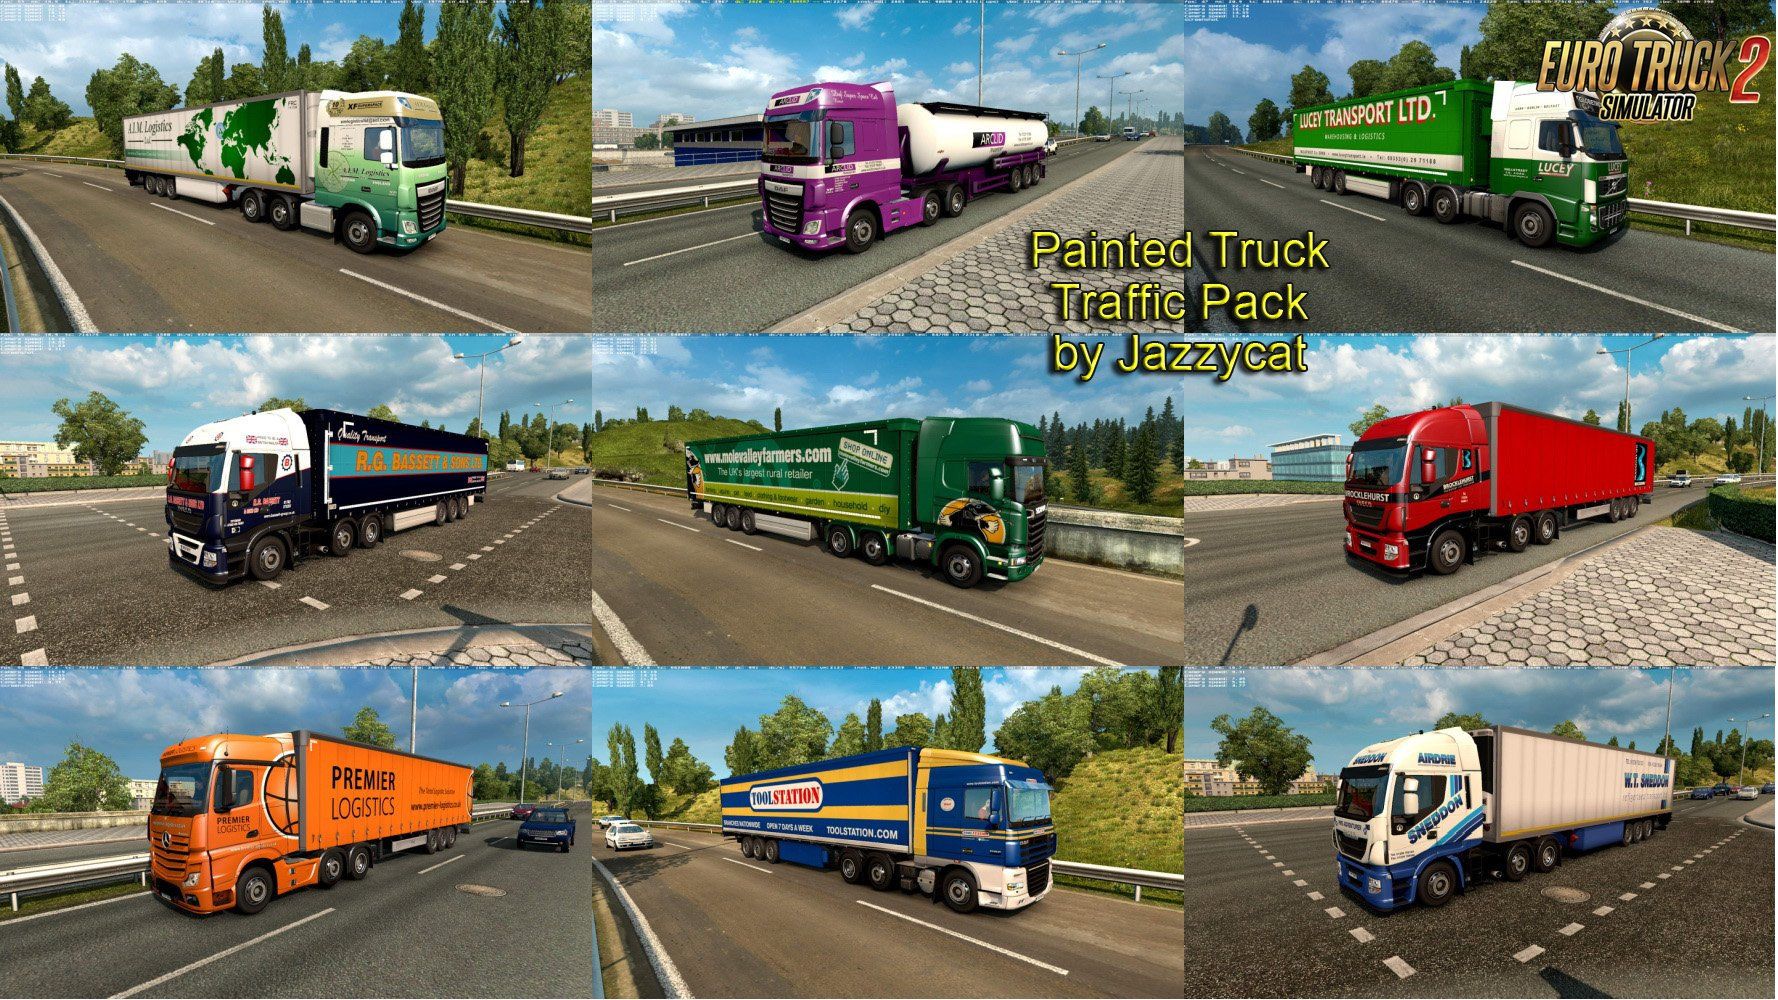 Painted Truck Traffic Pack v5.0 by Jazzycat